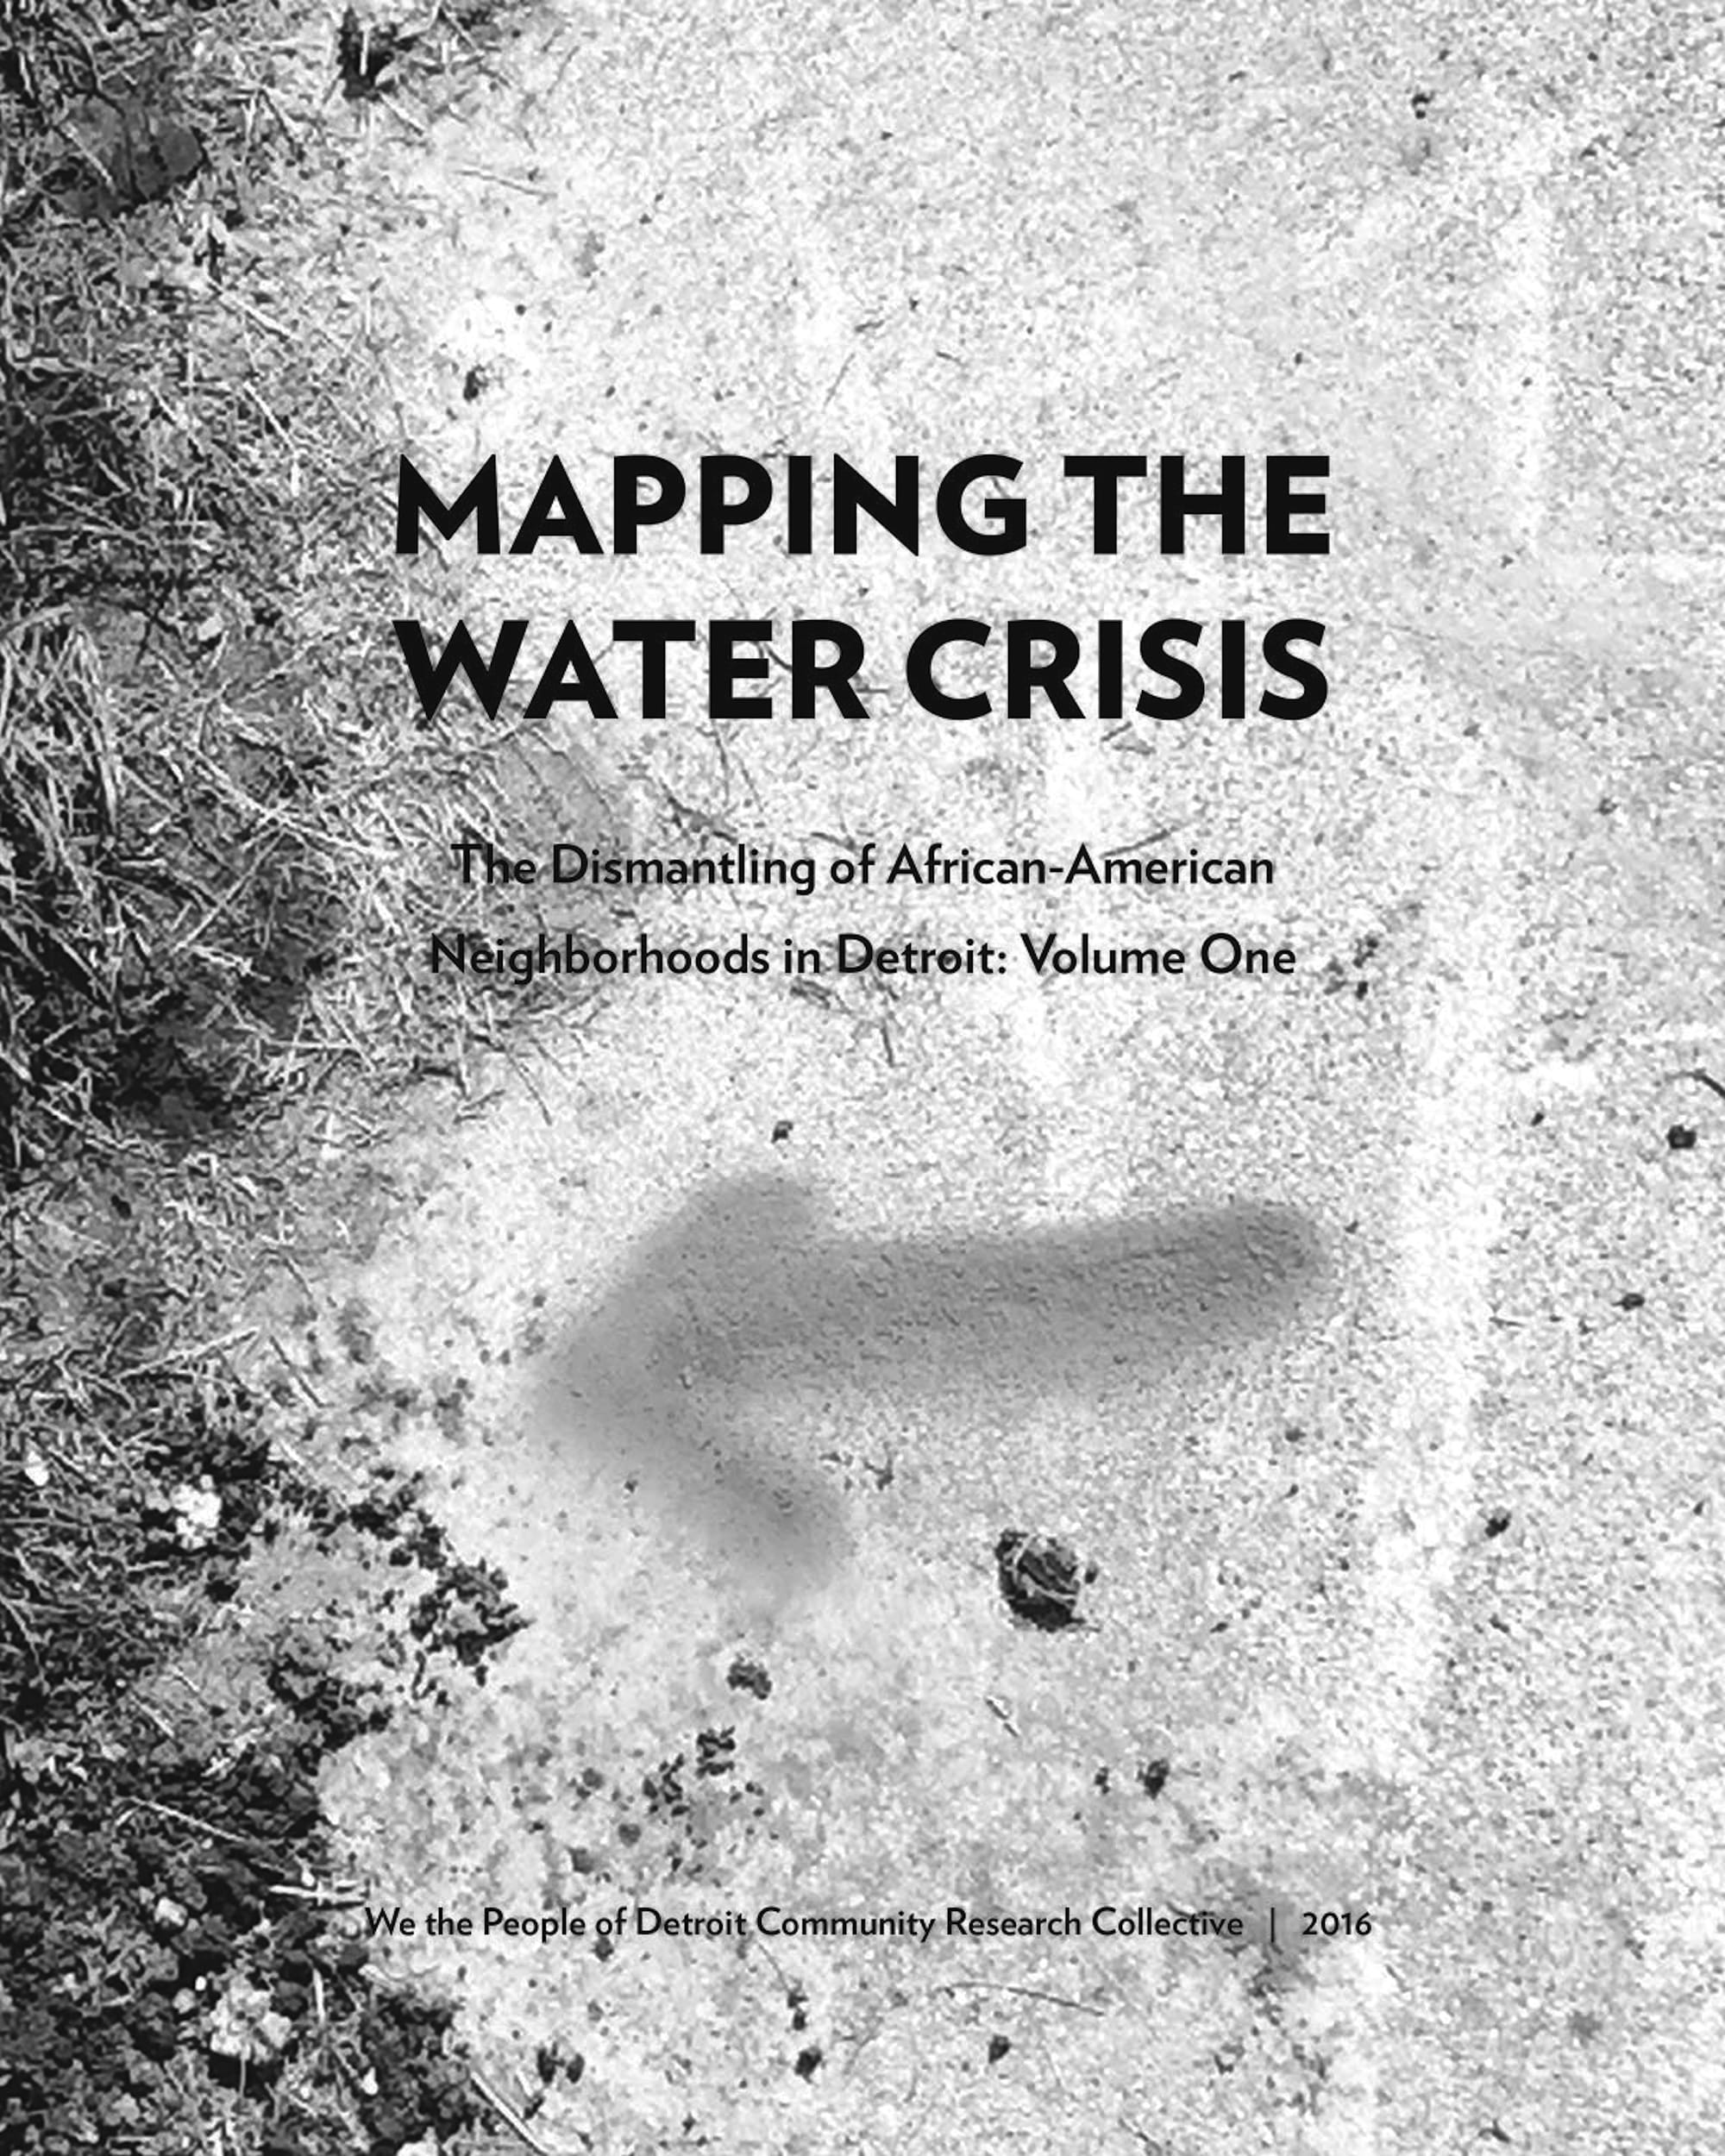 We the People of Detroit Community Research Collective, _Mapping the Water Crisis: The Dismantling of African-American Neighborhoods in Detroit: Volume One_, front cover, http://wethepeopleofdetroit.com/communityresearch/water/, 2016. © We the People of Detroit Community Research Collective